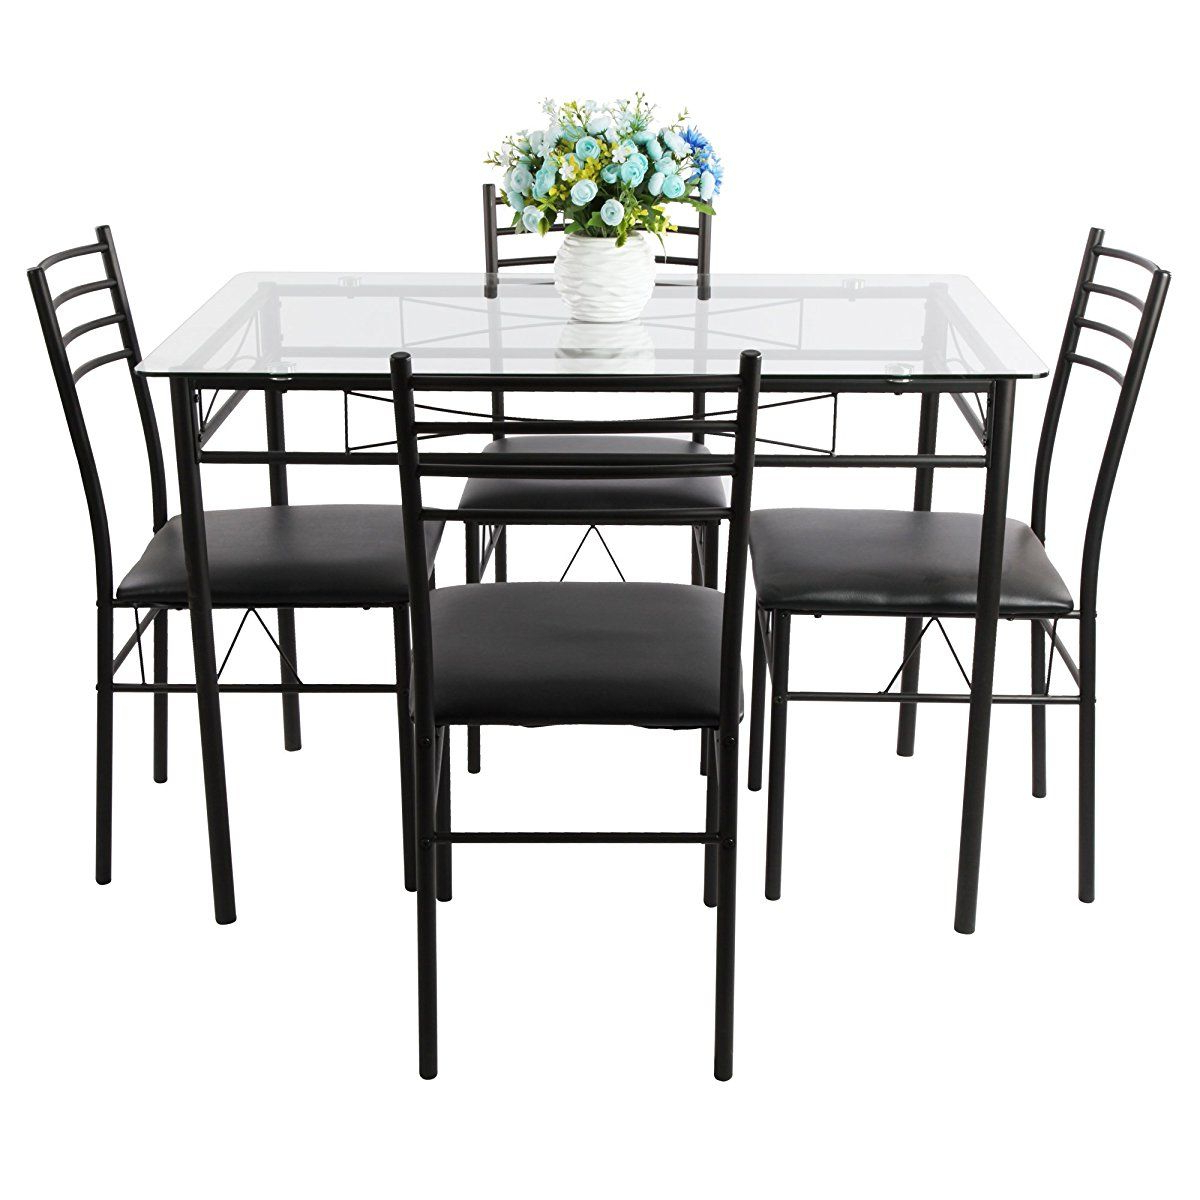 Liles 5 Piece Breakfast Nook Dining Sets For Well Known Vecelo Dining Table With 4 Chairs Black In  (View 15 of 25)